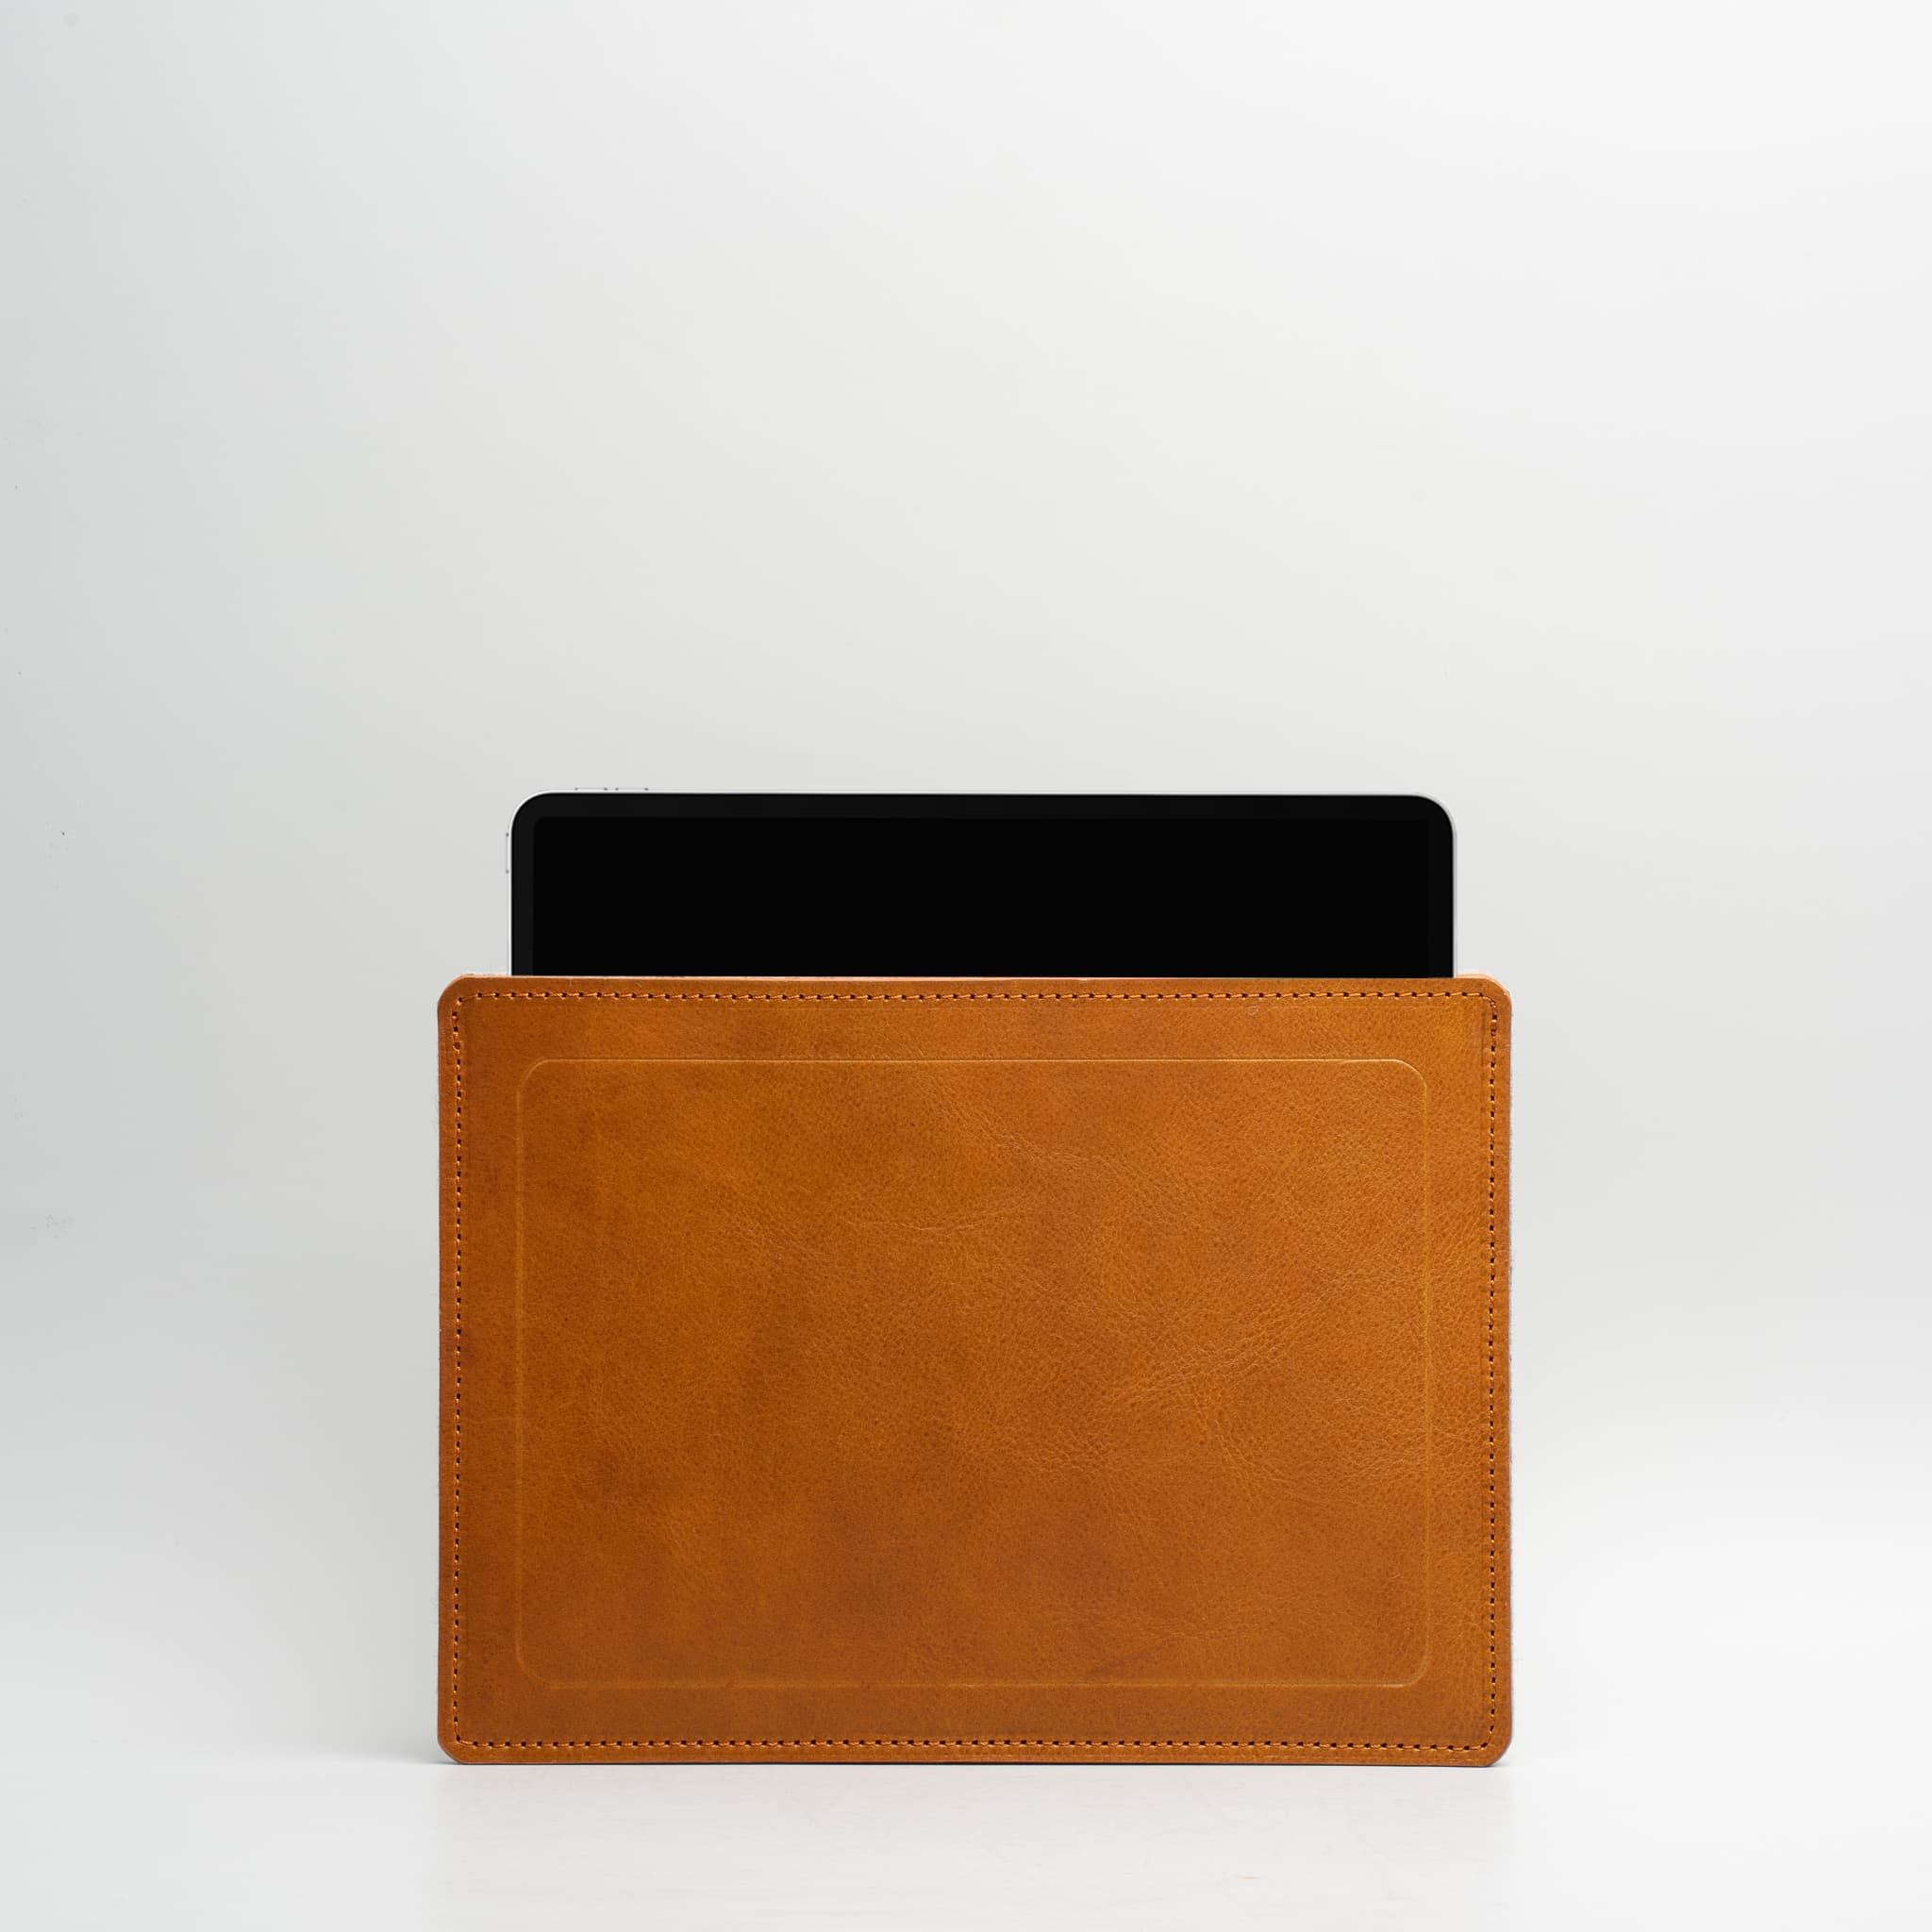 ipad pro 12.9 inch leather sleeve